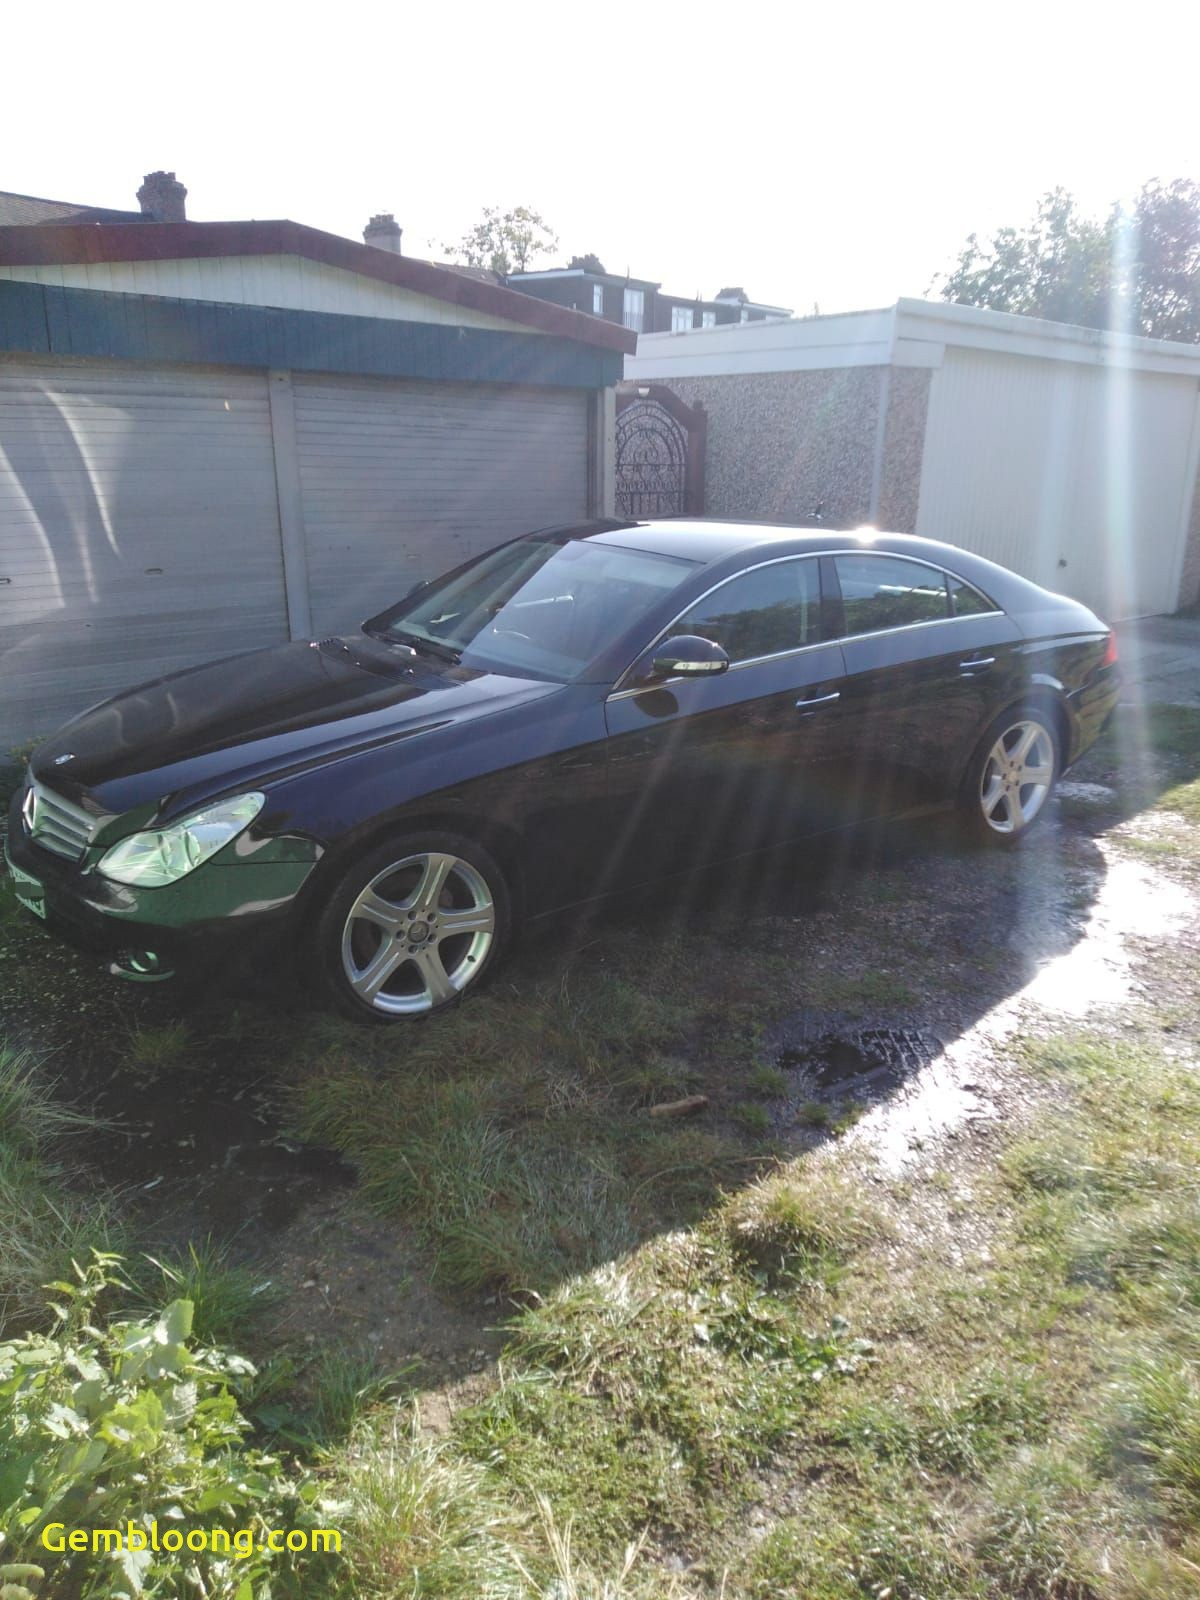 Cars for Sale Near Me Under 4000 Best Of Cheap Diesel Cars Under £4 000 for Sale On Auto Trader Uk